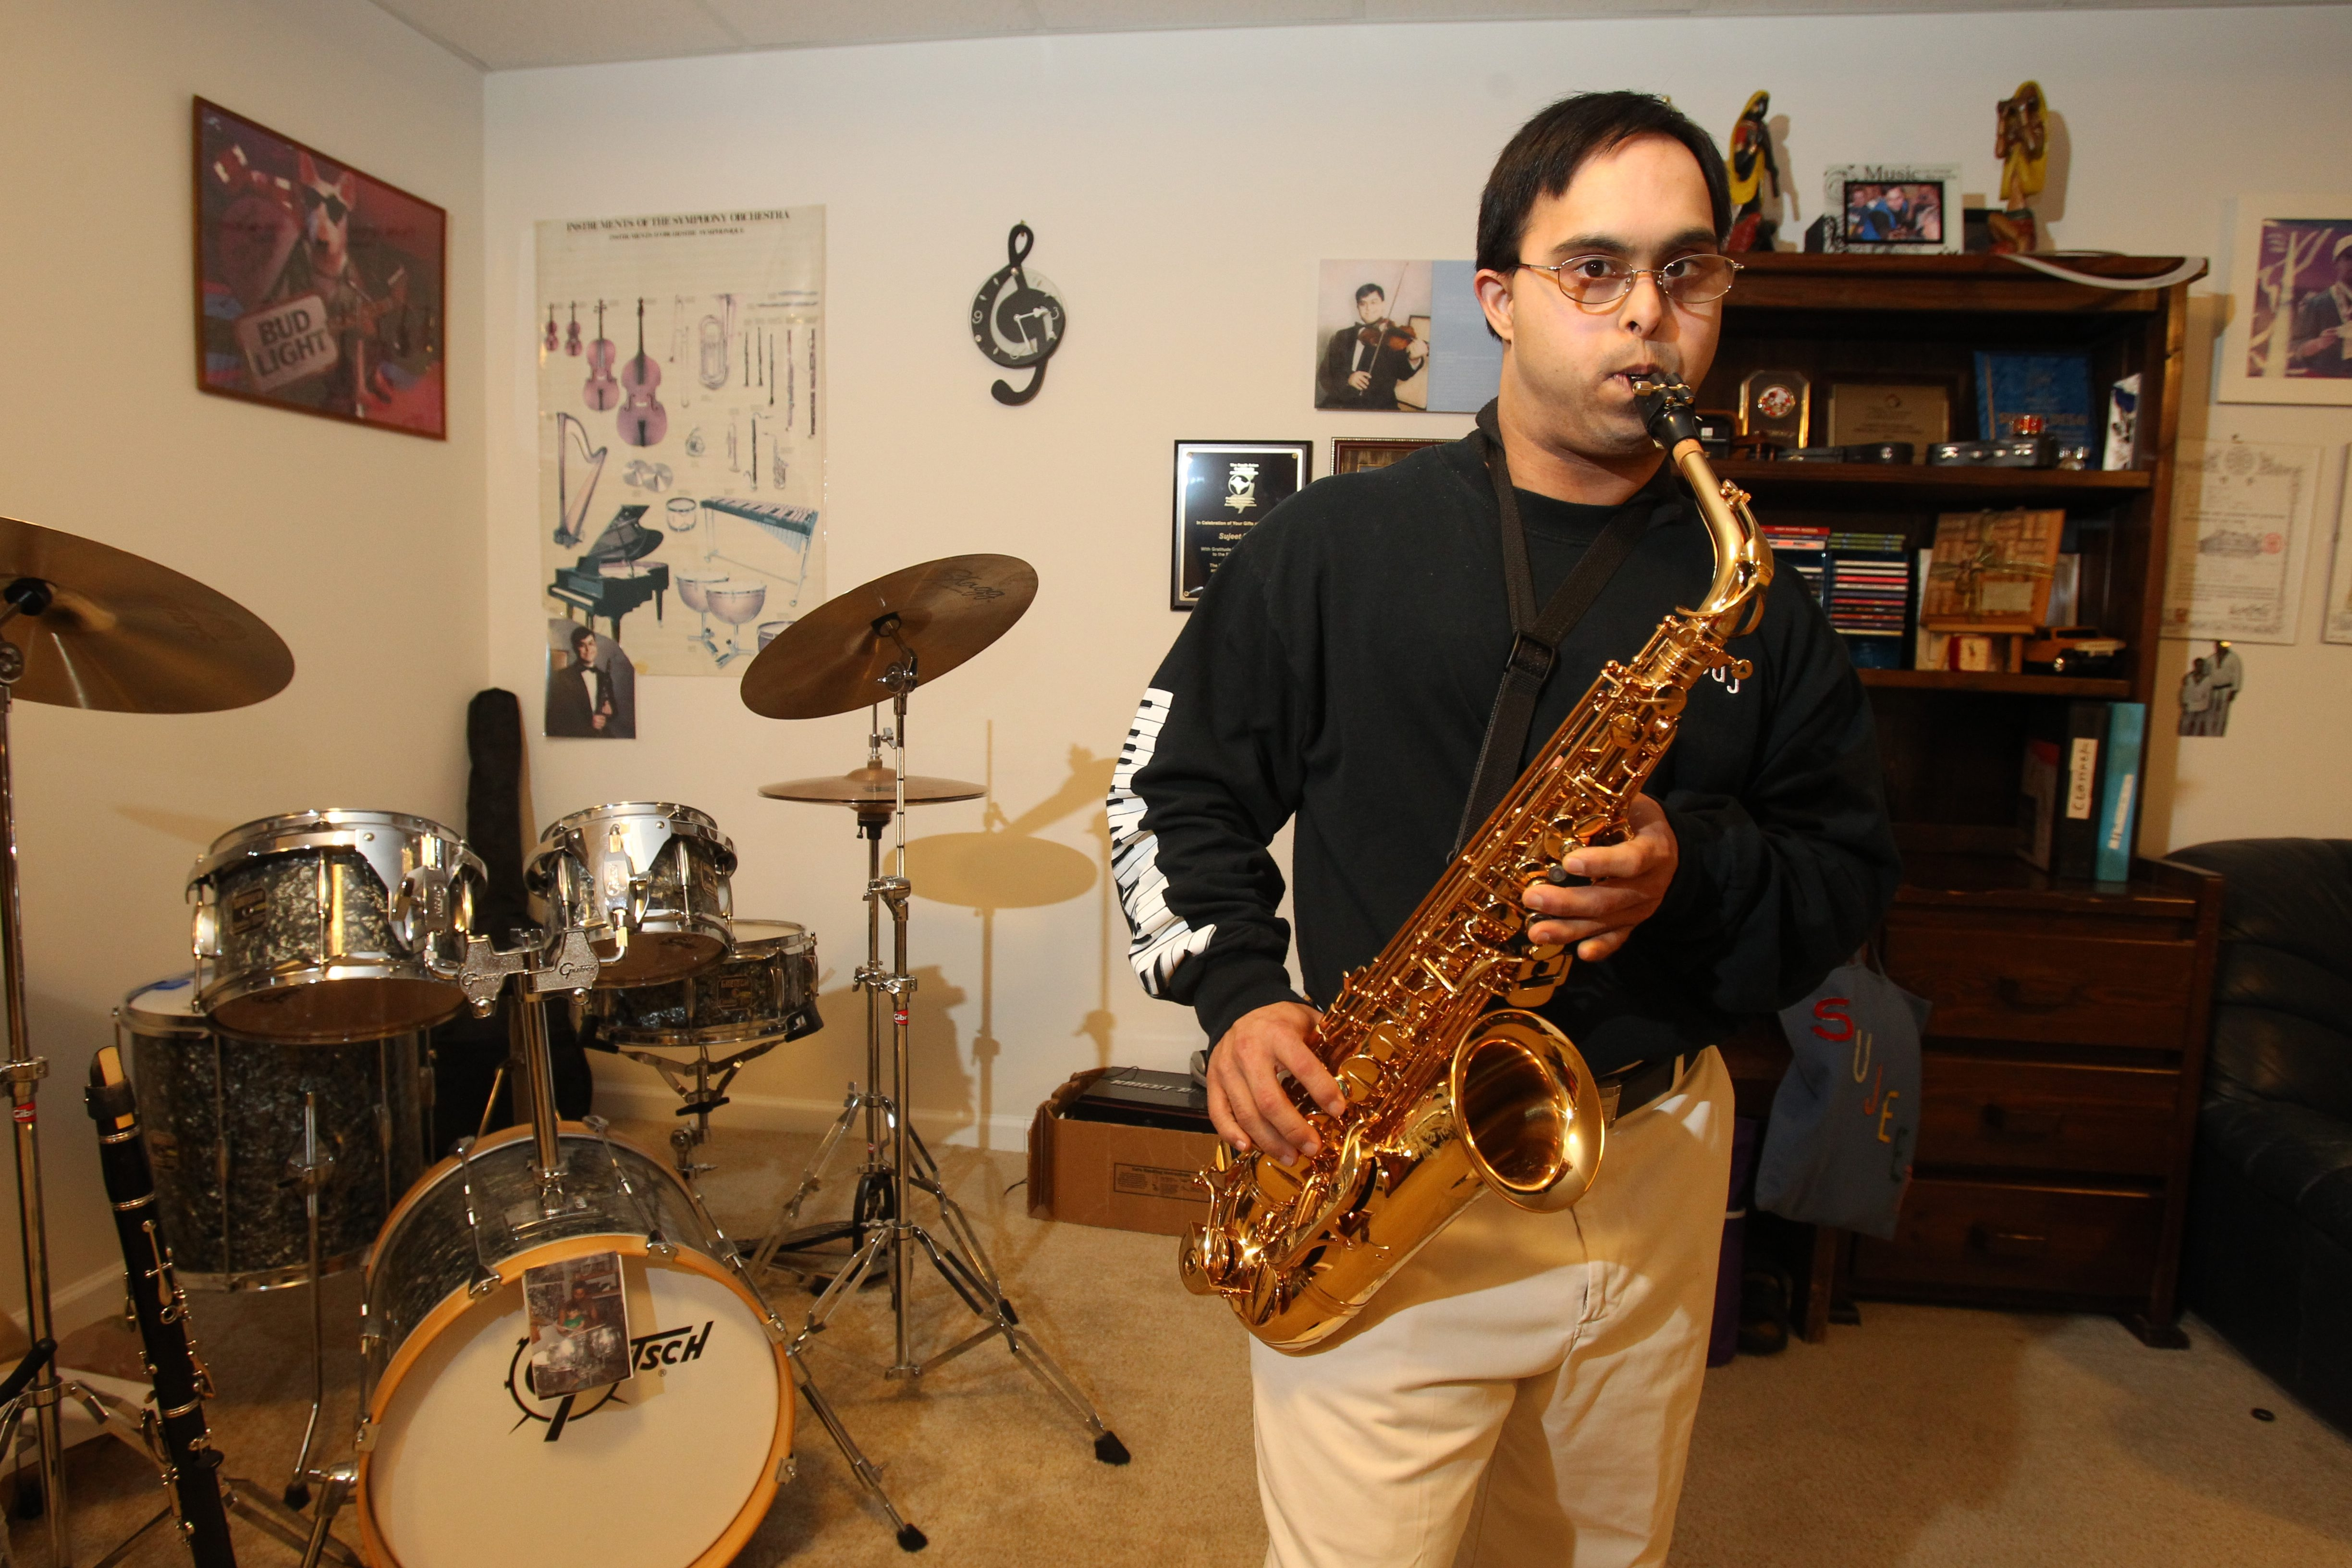 """Sujeet Desai, 32, plays saxophone and six other musical instruments. He has won medals at the World Summer Special Olympics and has traveled the world. He says, """"The main thing is not to give up."""""""